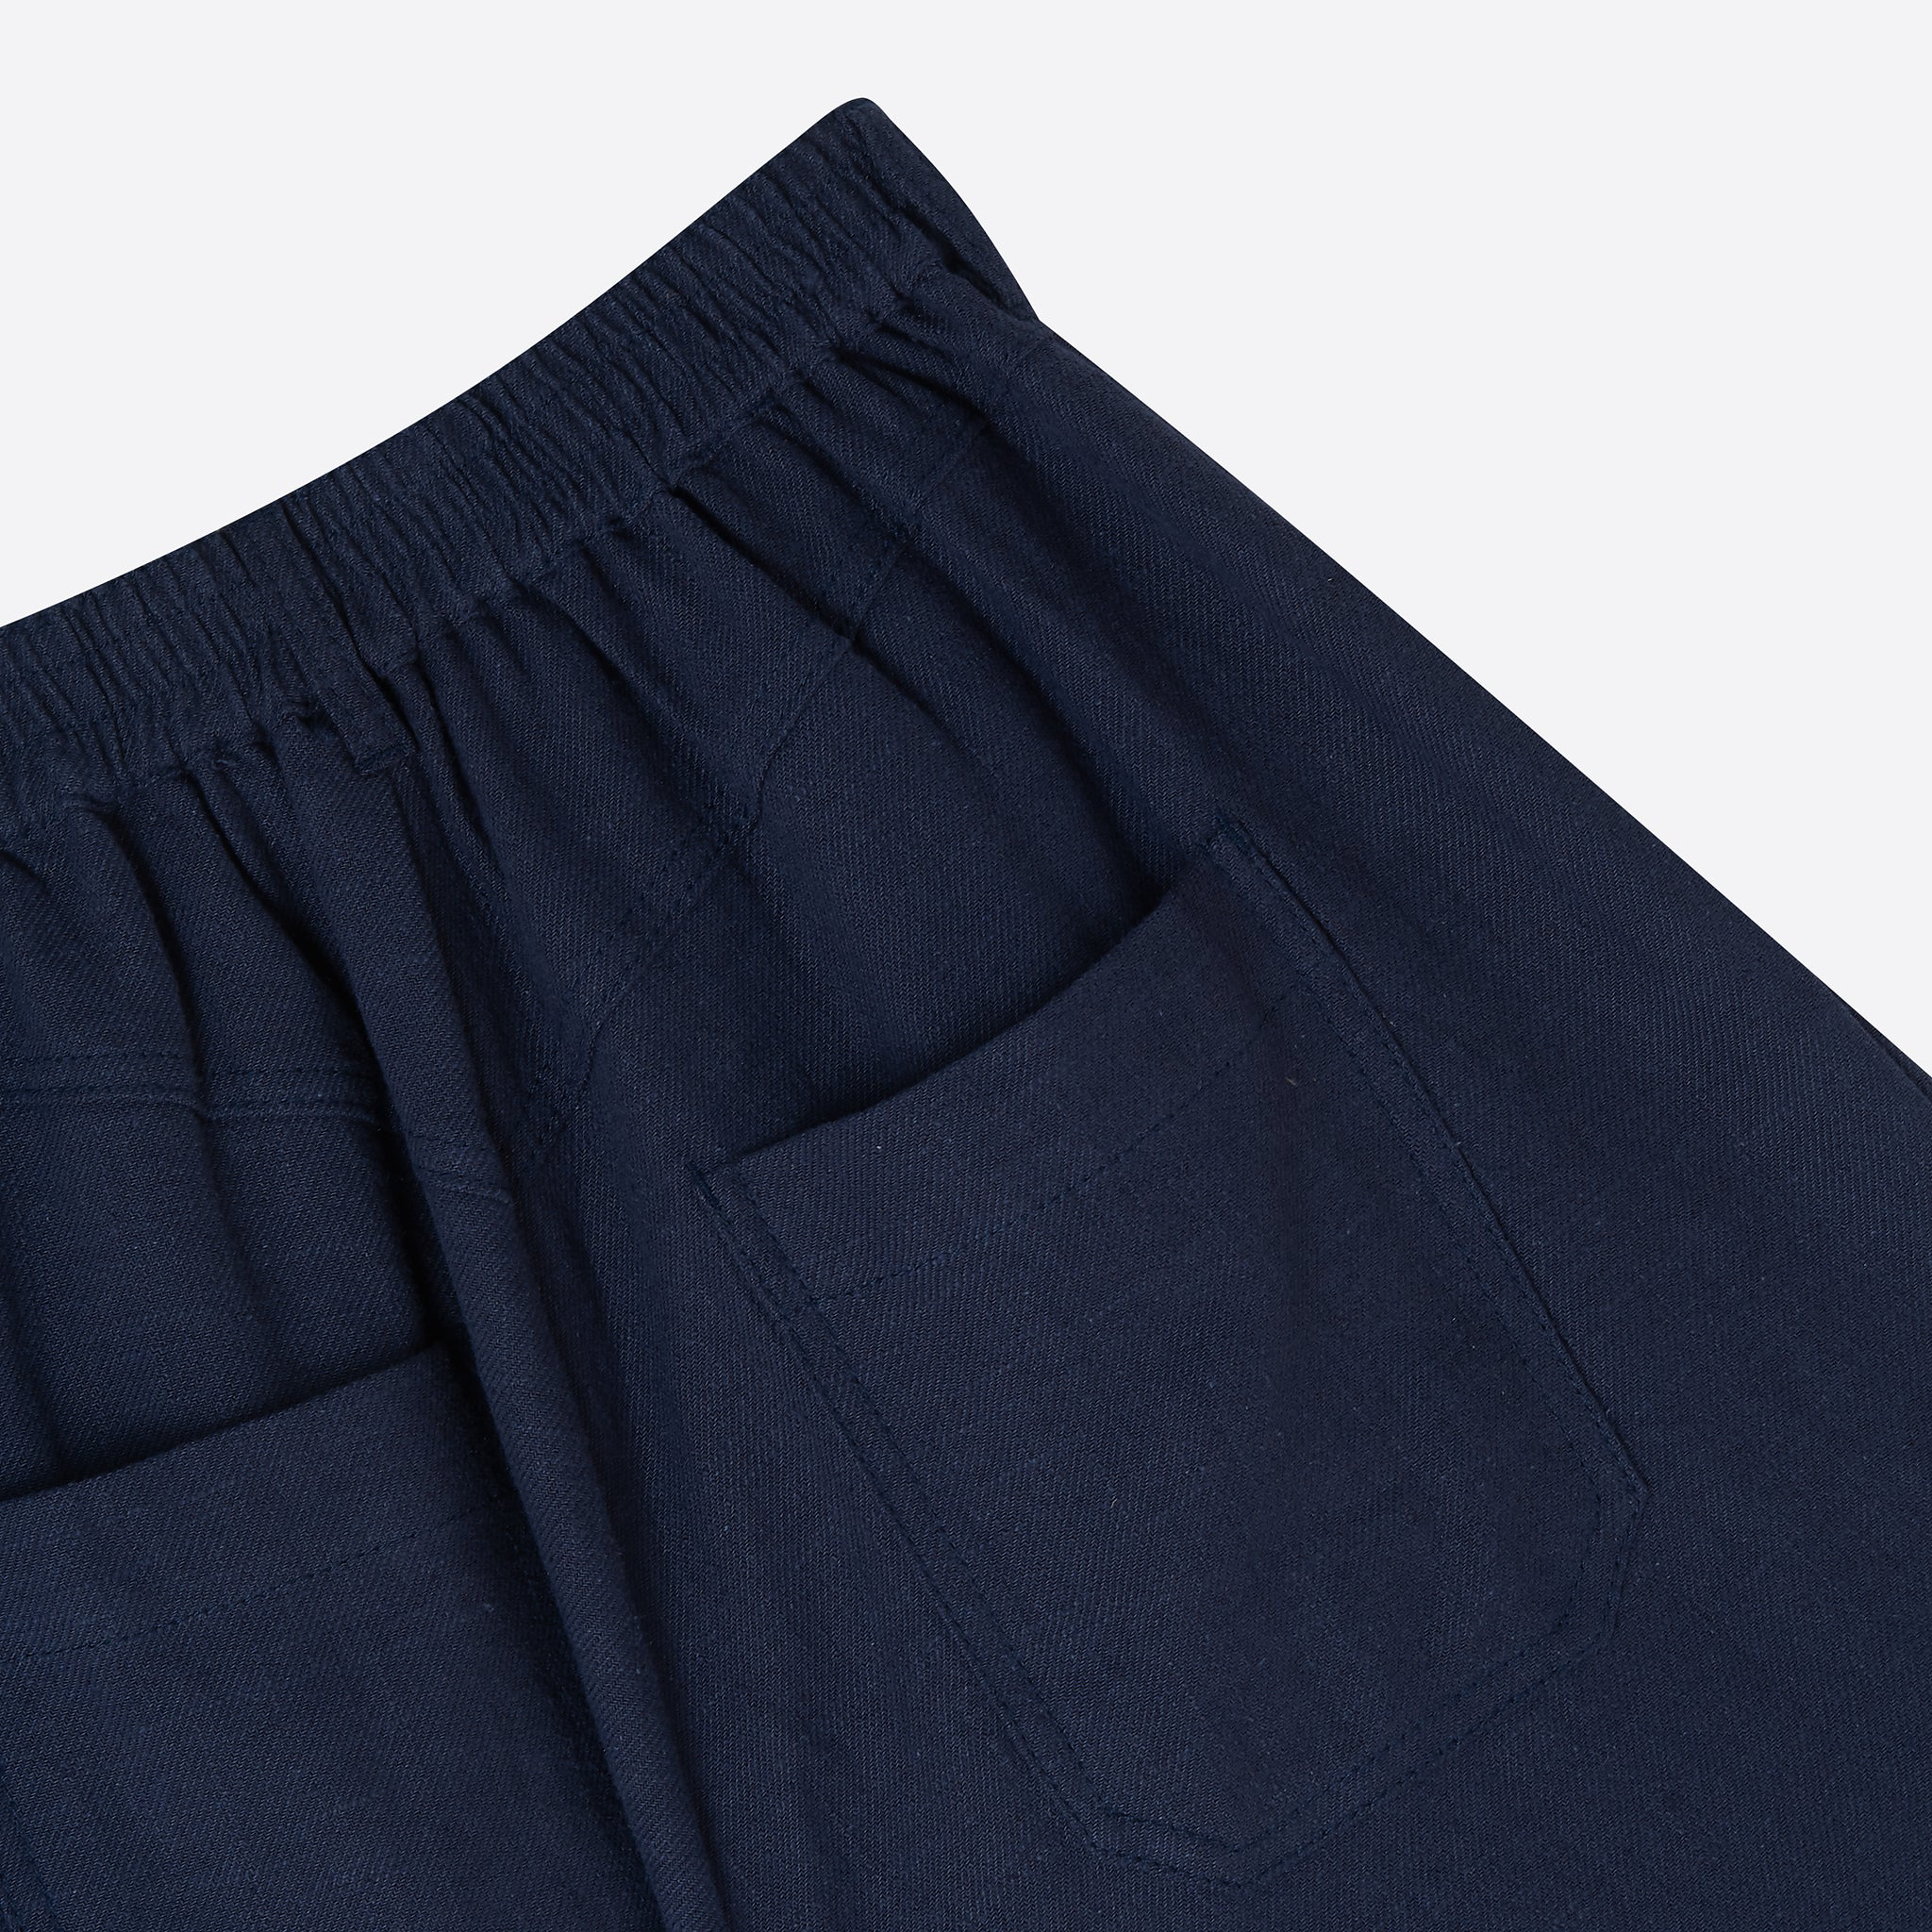 LF Markey Fergus Trouser in Navy Linen